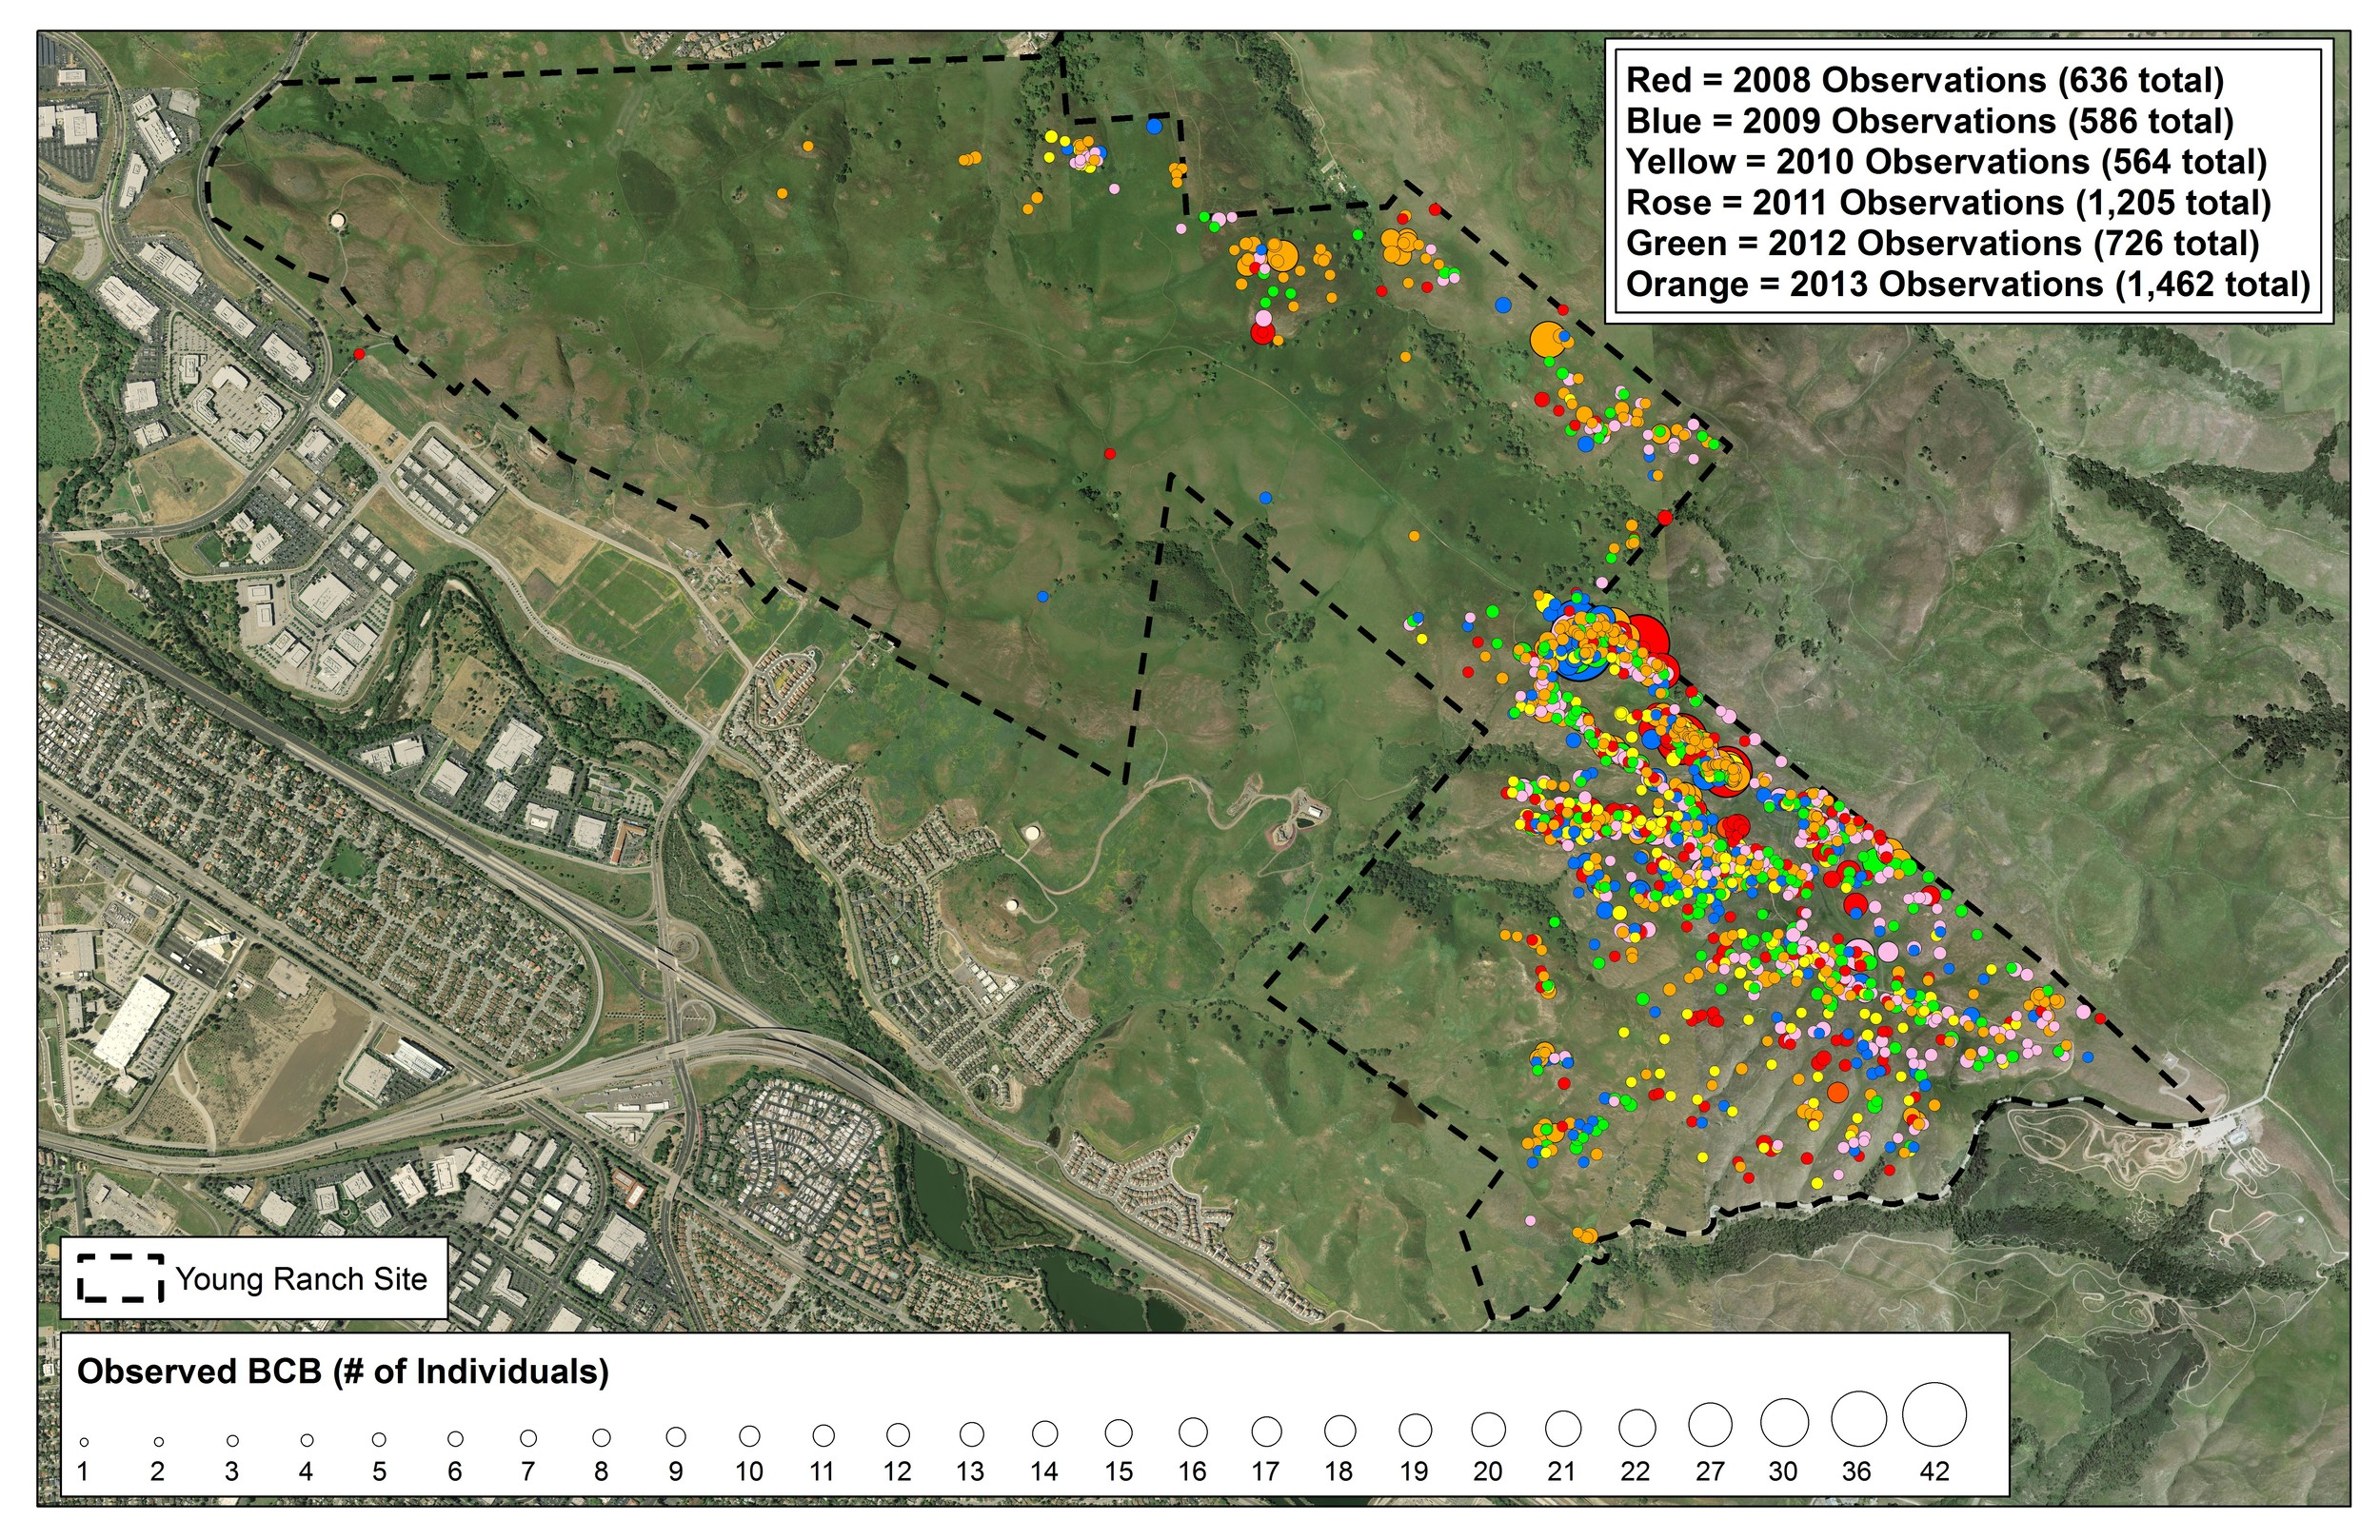 Figure 3.  Bay checkerspot butterfly occurrences on Young Ranch